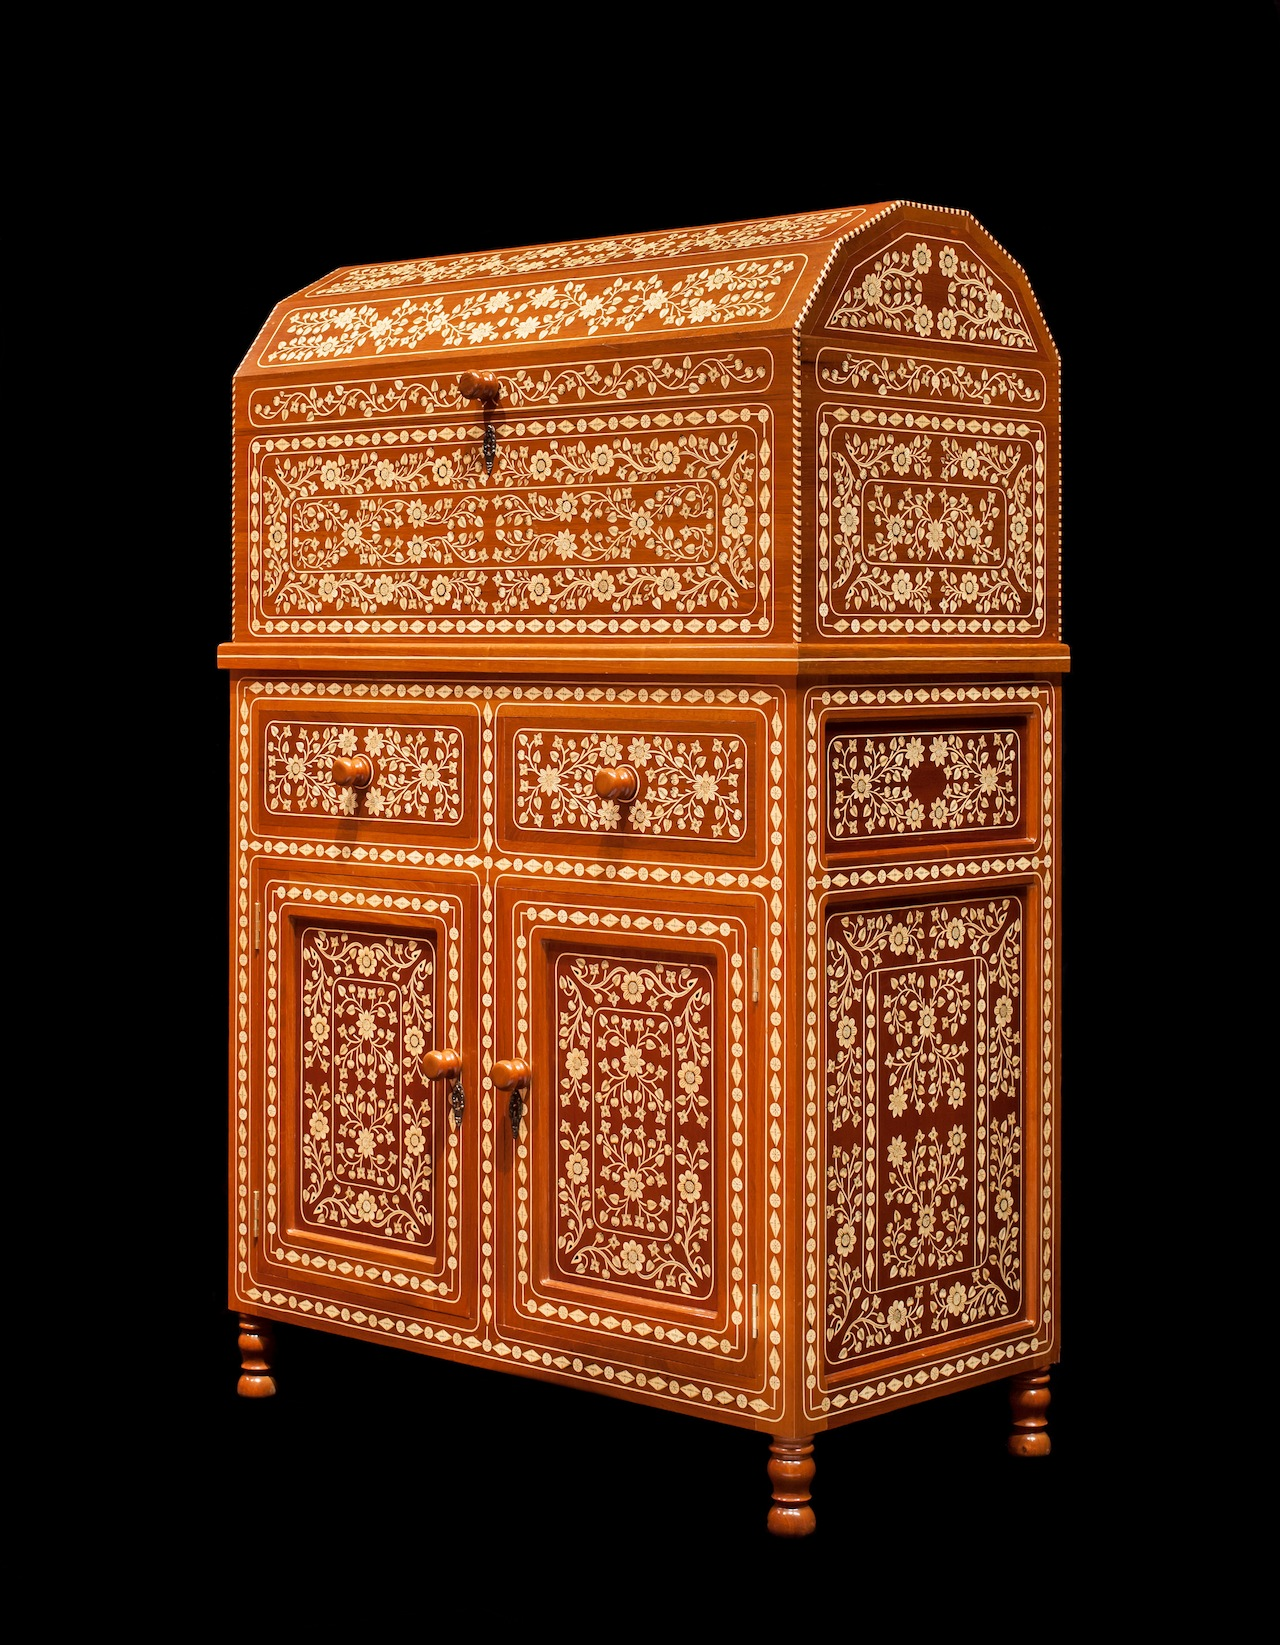 . Francisco Aguirre Tejeda. Chest on cabinet, 2000. Carved, assembled and inlaid wood. Jalostotitlán, Jalisco, Mexico. Image  Courtesy of Fomento Cultural Banamex, A.C.